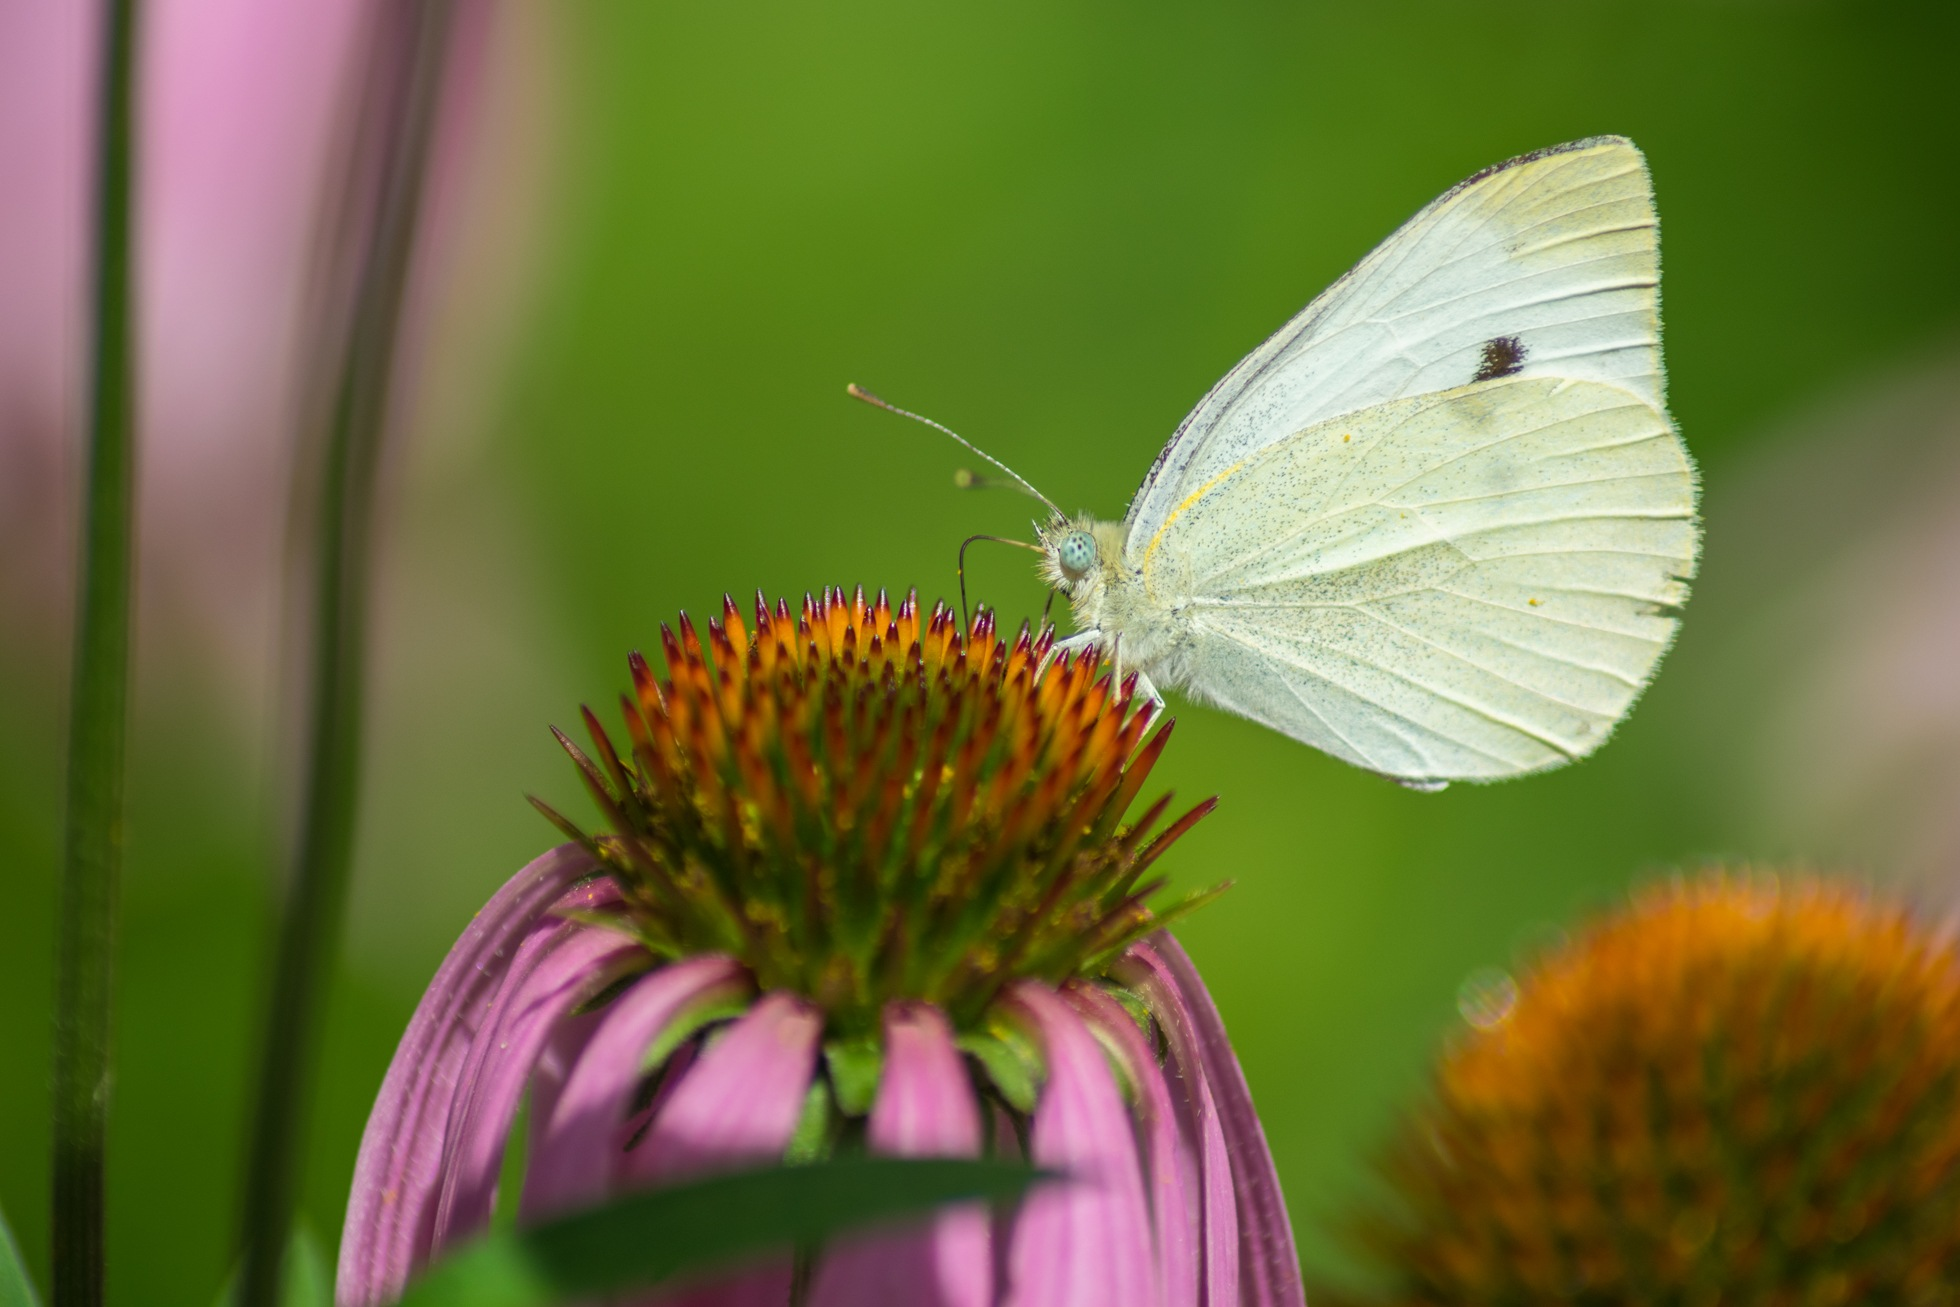 Cabbage White Butterfly by WesShealey